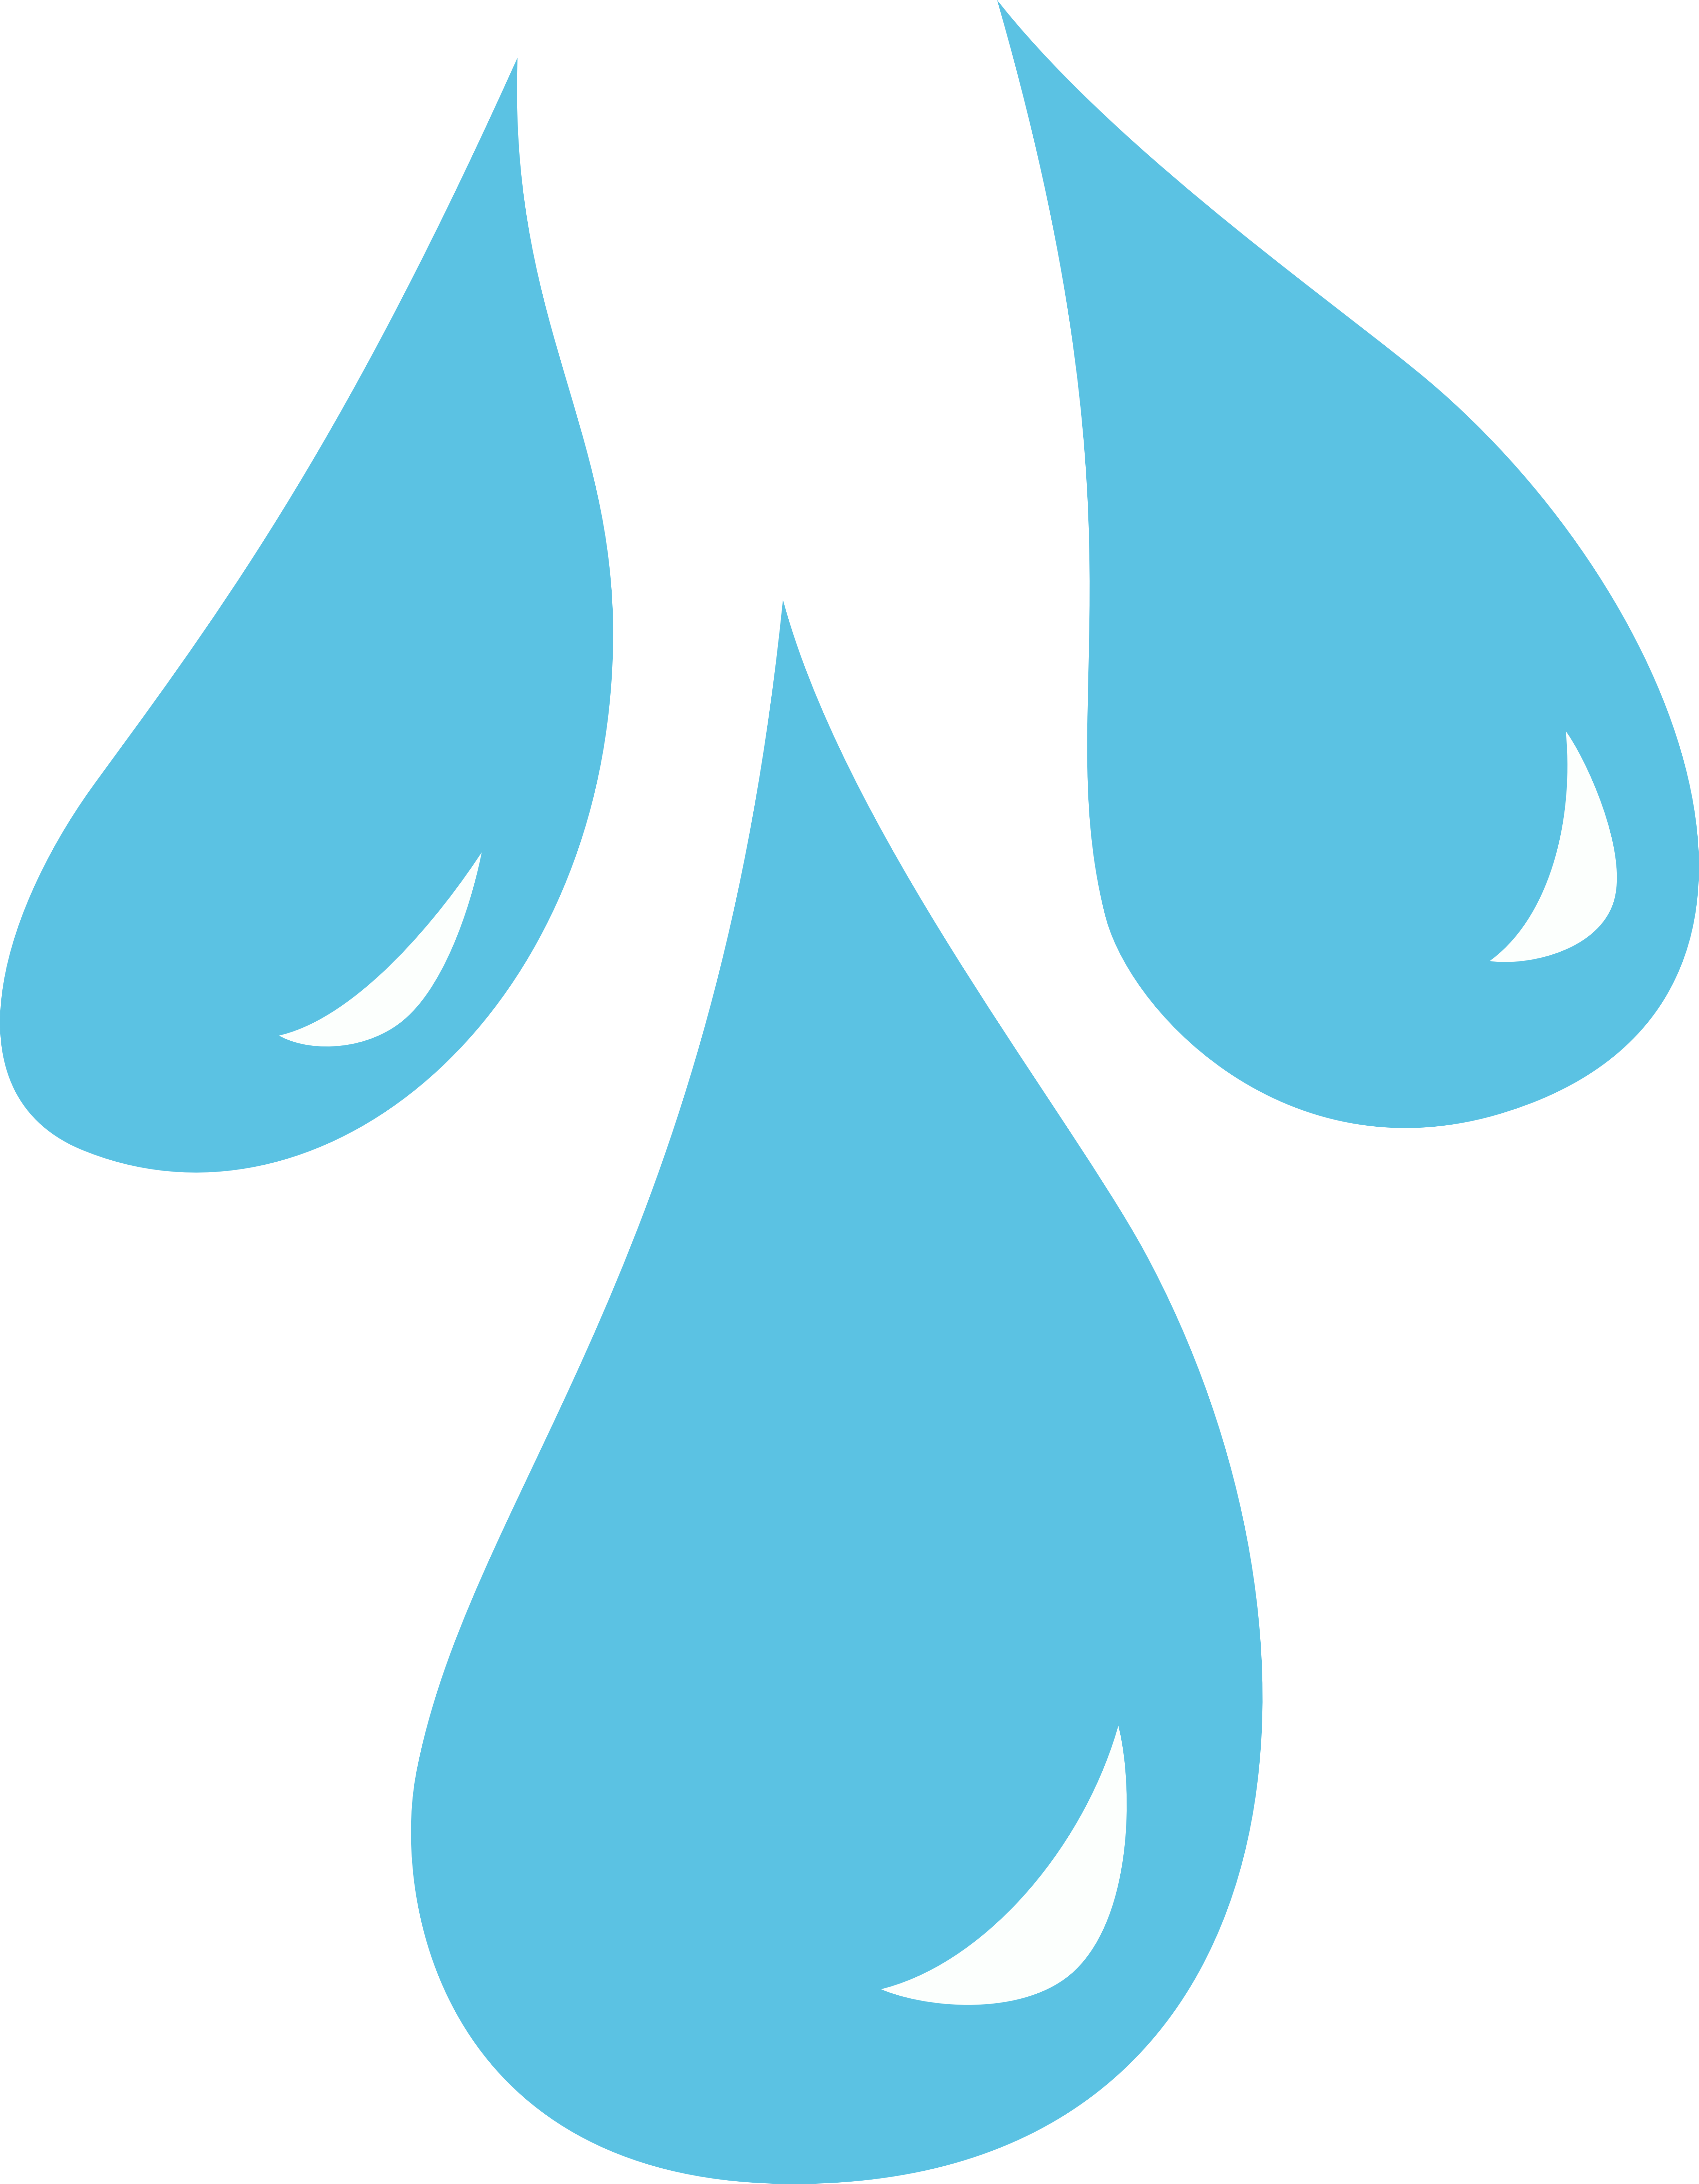 Raindrops pictures clipart clipart black and white library Free Drop Cliparts, Download Free Clip Art, Free Clip Art on Clipart ... clipart black and white library